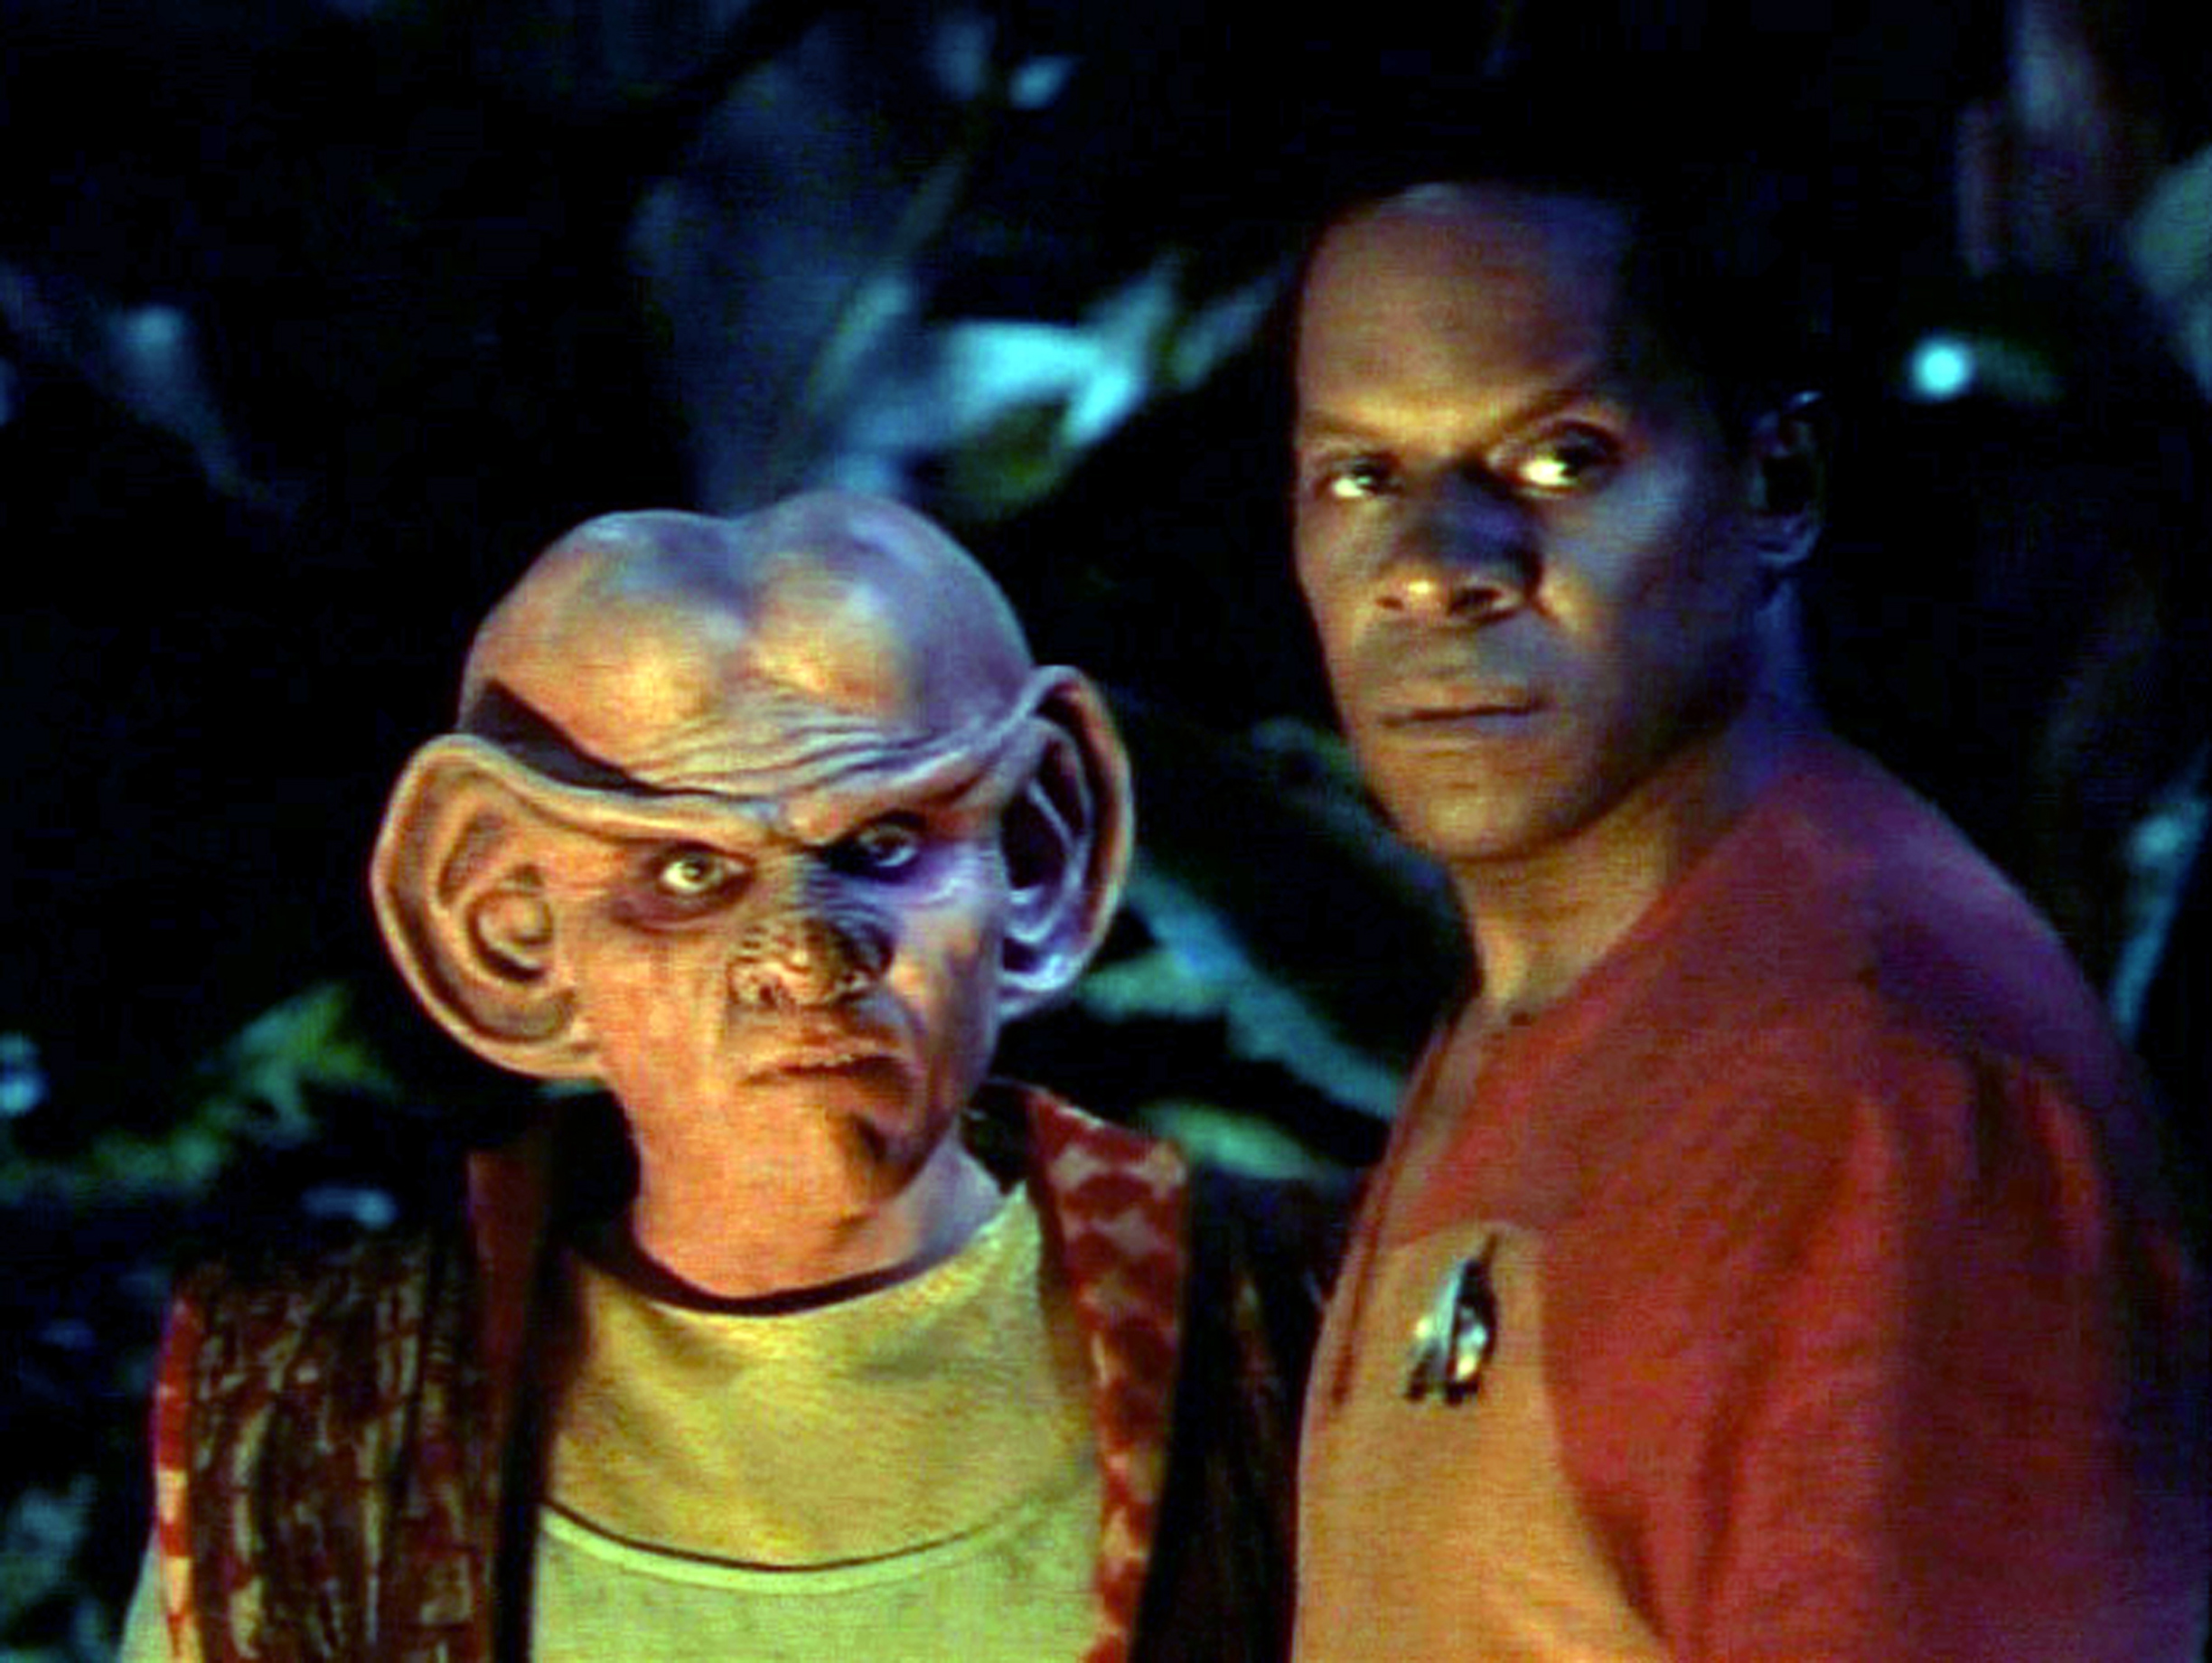 LOS ANGELES - JUNE 12: Armin Shimerman as Quark and Avery Brooks as Commander Benjamin Sisko in the STAR TREK: DEEP SPACE NINE episode,  The Jem'Hadar.   Original air date, June 12, 1994.  Season 2, episode 26.  Image is a screen grab.  (Photo by CBS via Getty Images)